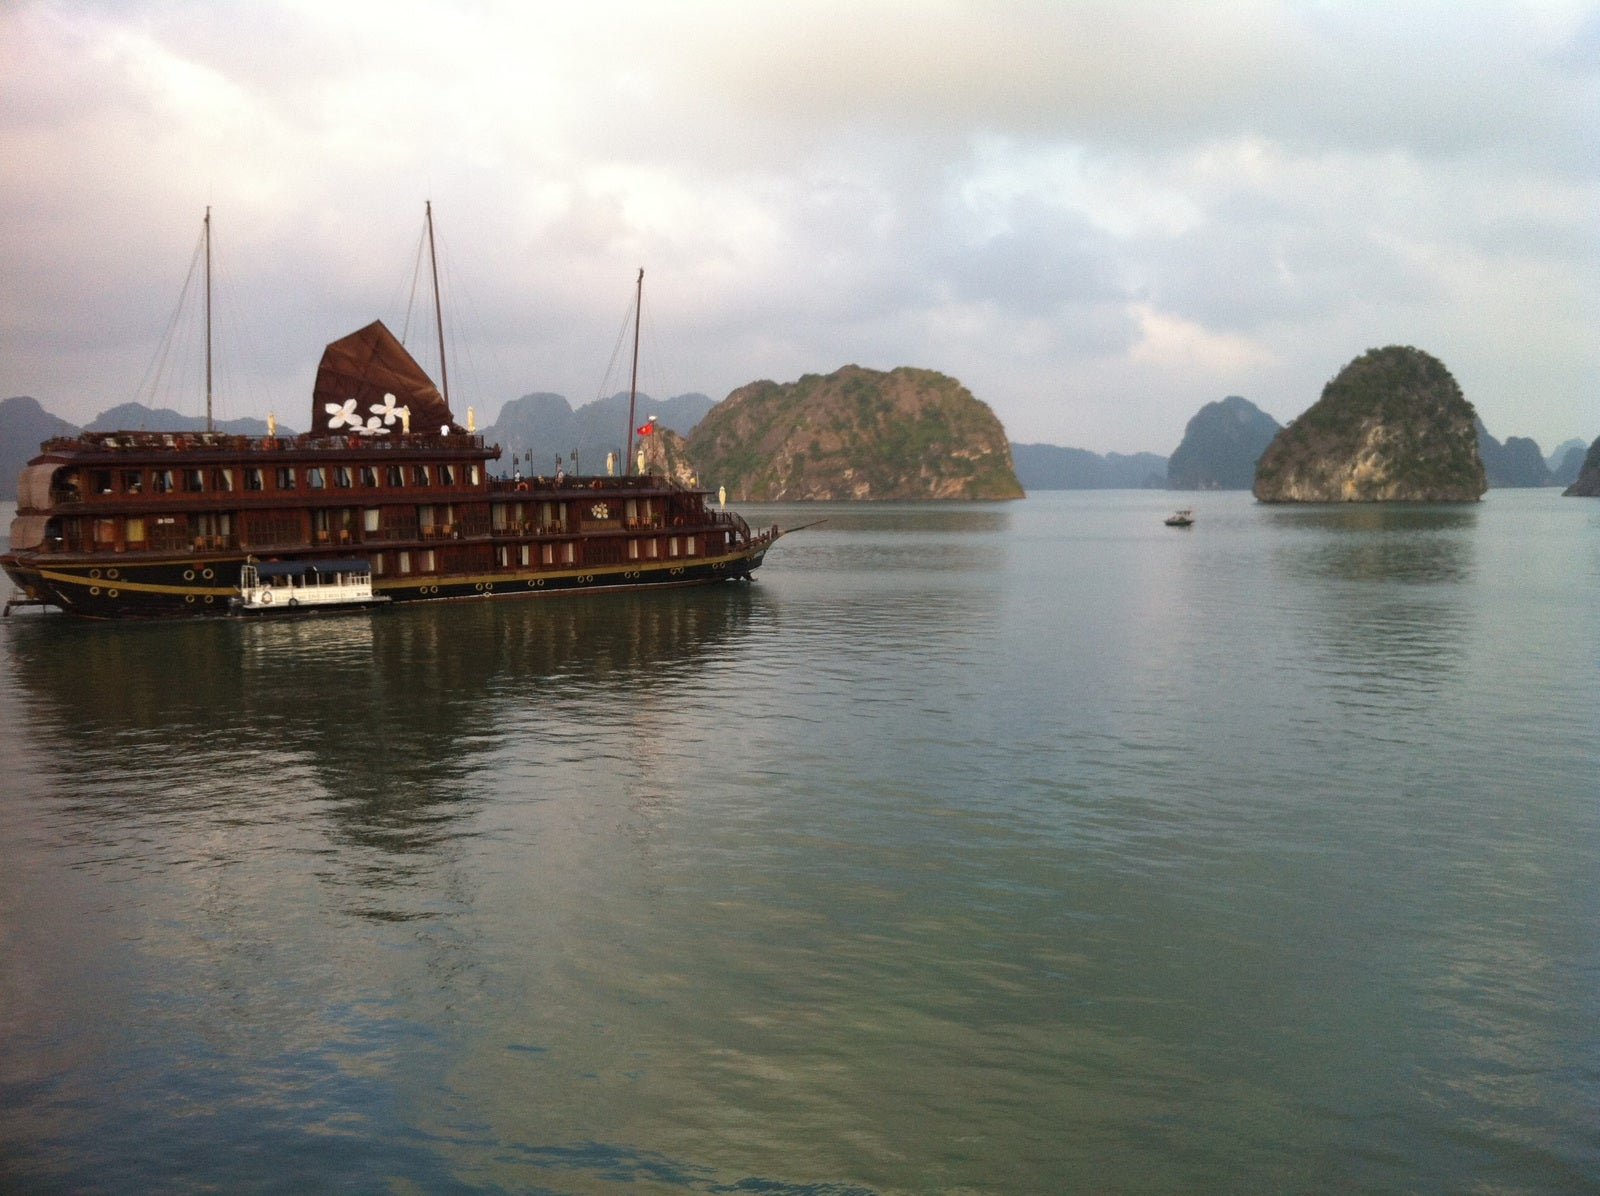 Mar en Bahia de Halong - Halong Bay